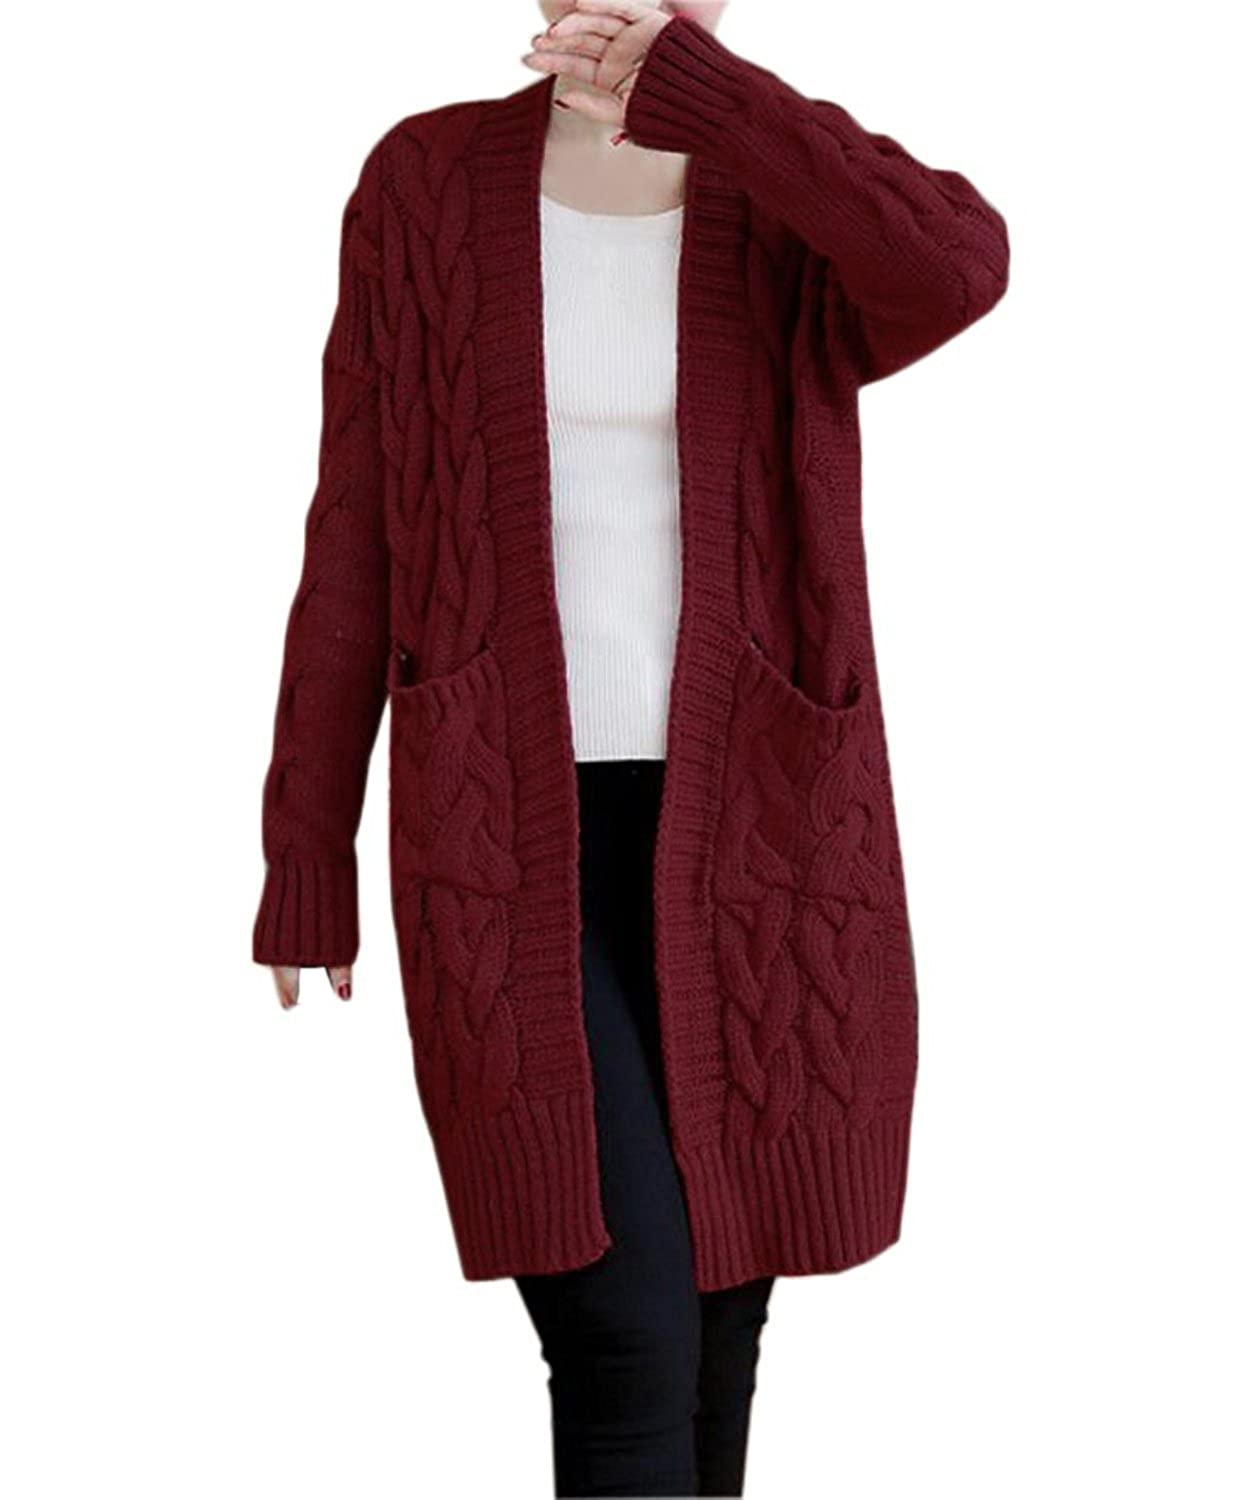 NUTEXROL Women s Open Front Long Sleeve Knit Think Cardigan Chunky Sweater  Oversized Coat at Amazon Women s Clothing store  667443495